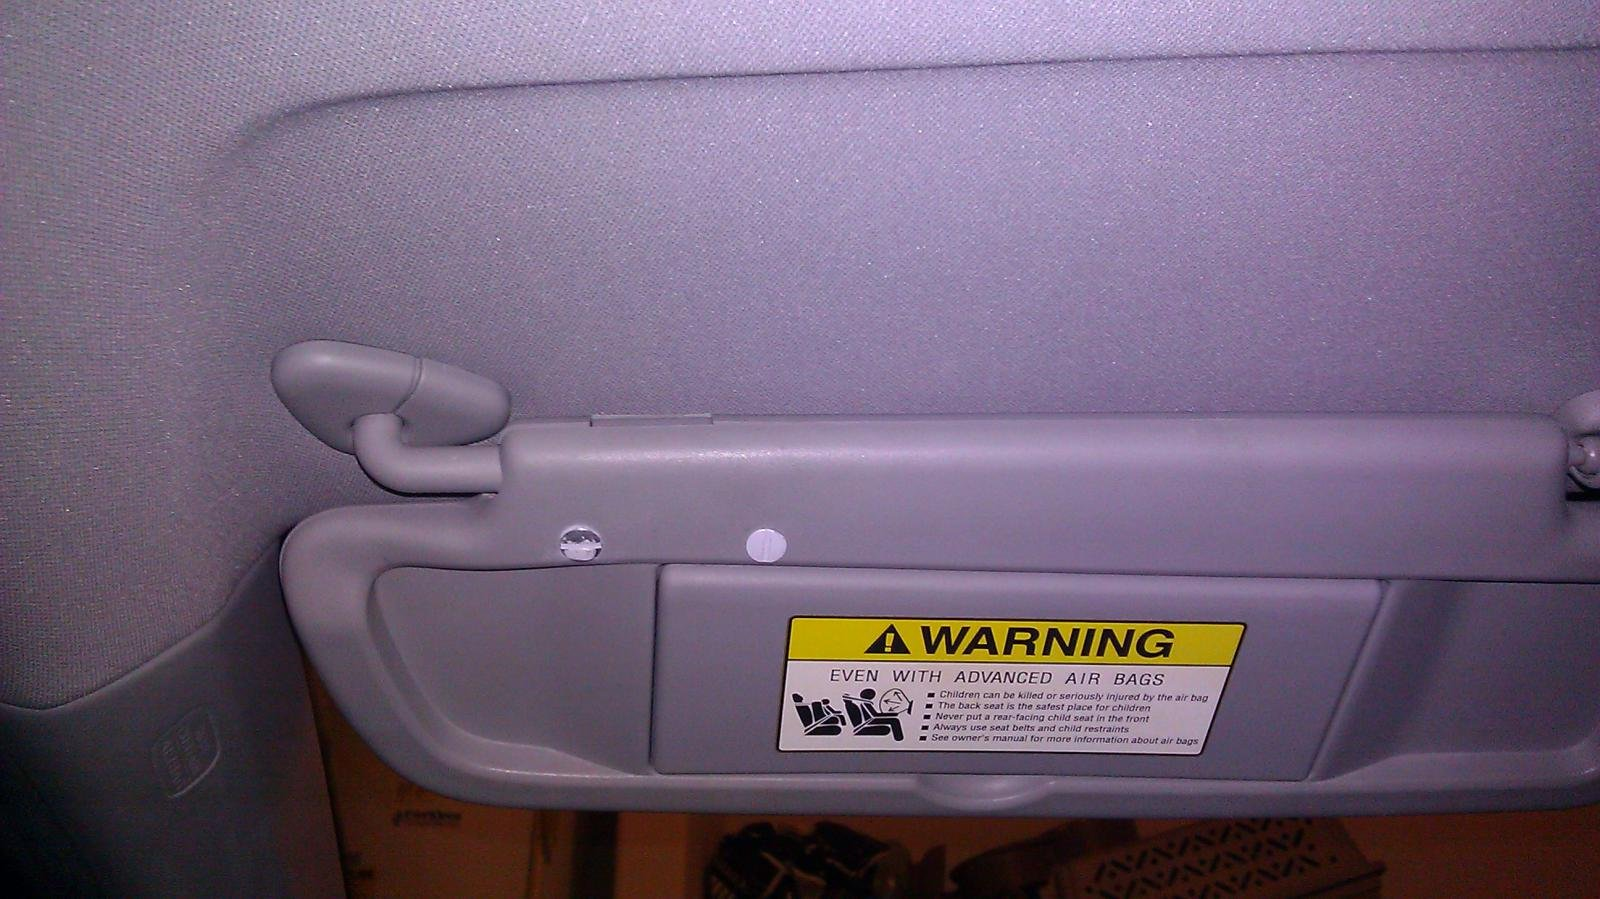 How to fix the SUNVISOR - Page 2 - 8th Generation Honda Civic Forum 75935fb77b9